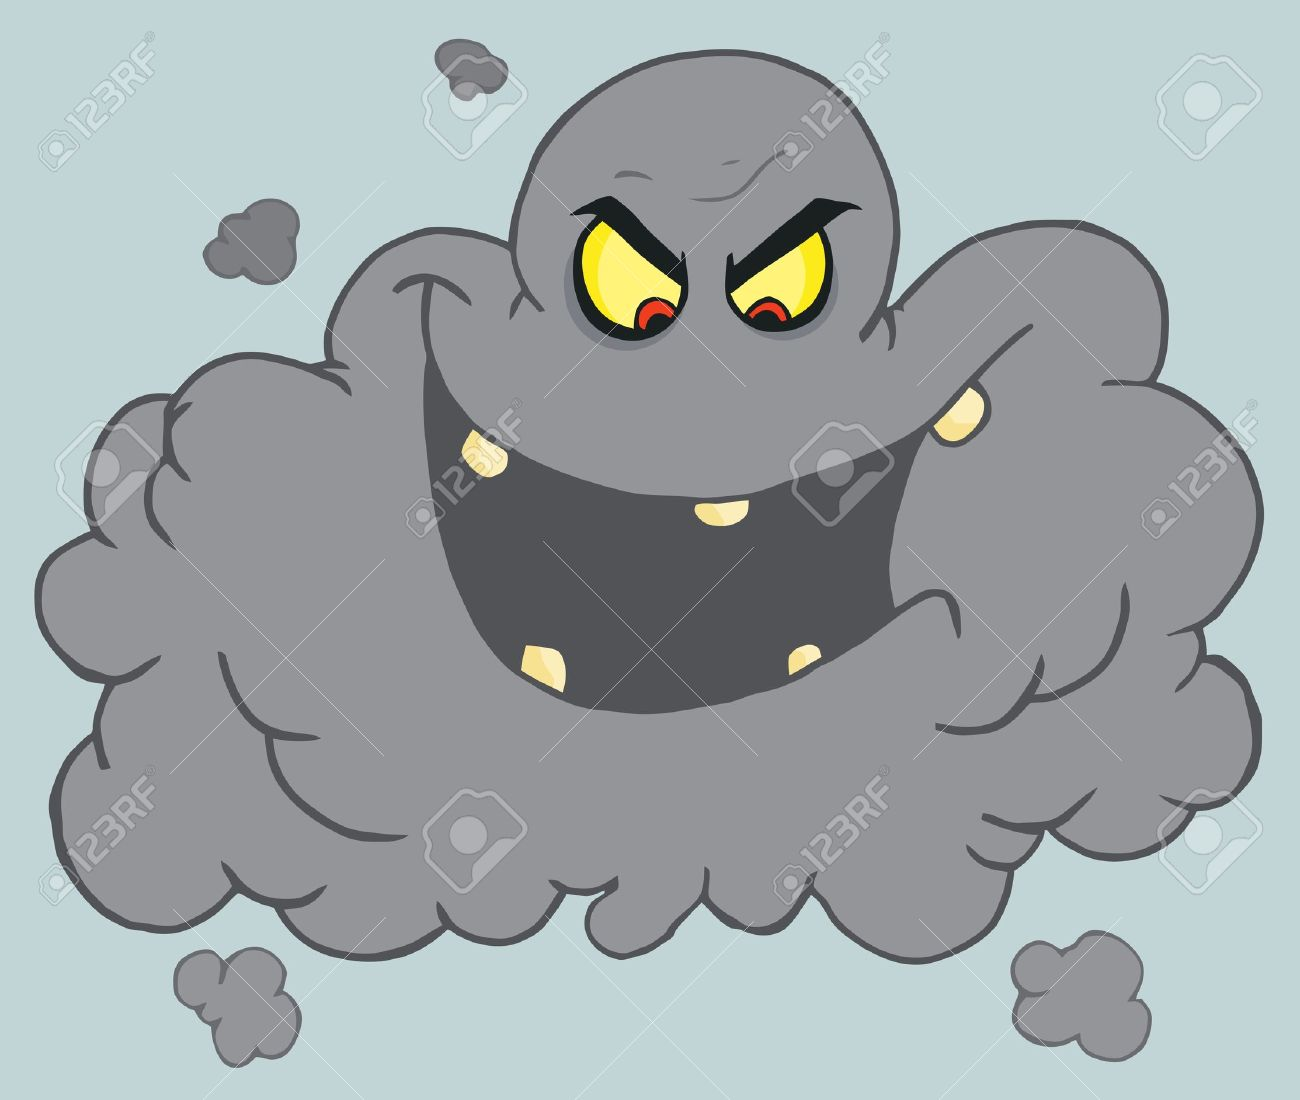 Evil Black Volcanic Ash Cloud Laughing Royalty Free Cliparts.